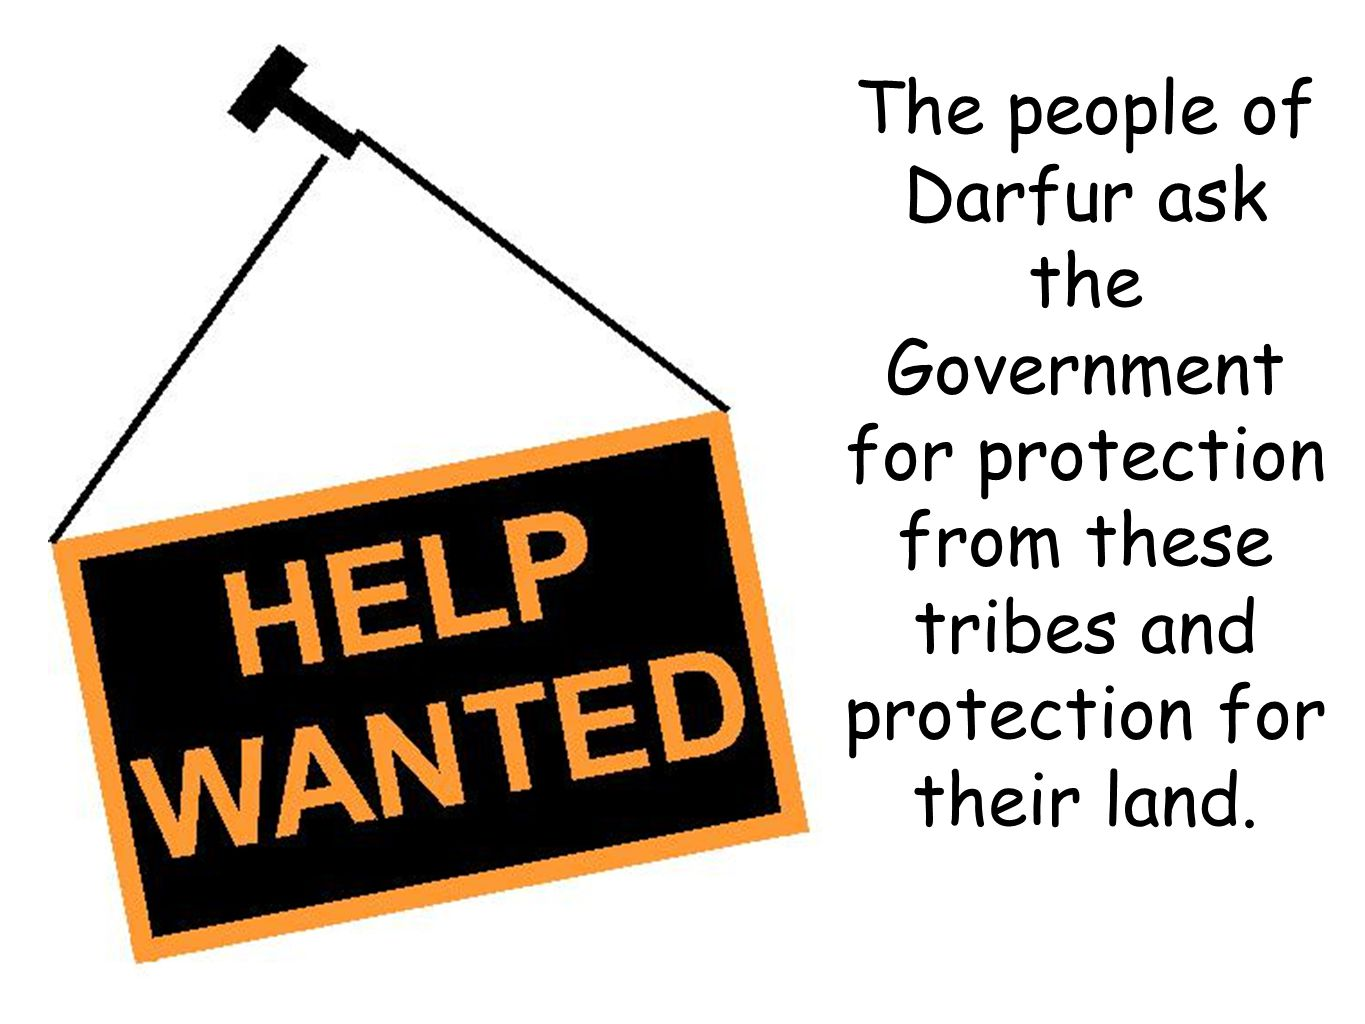 The people of Darfur ask the Government for protection from these tribes and protection for their land.